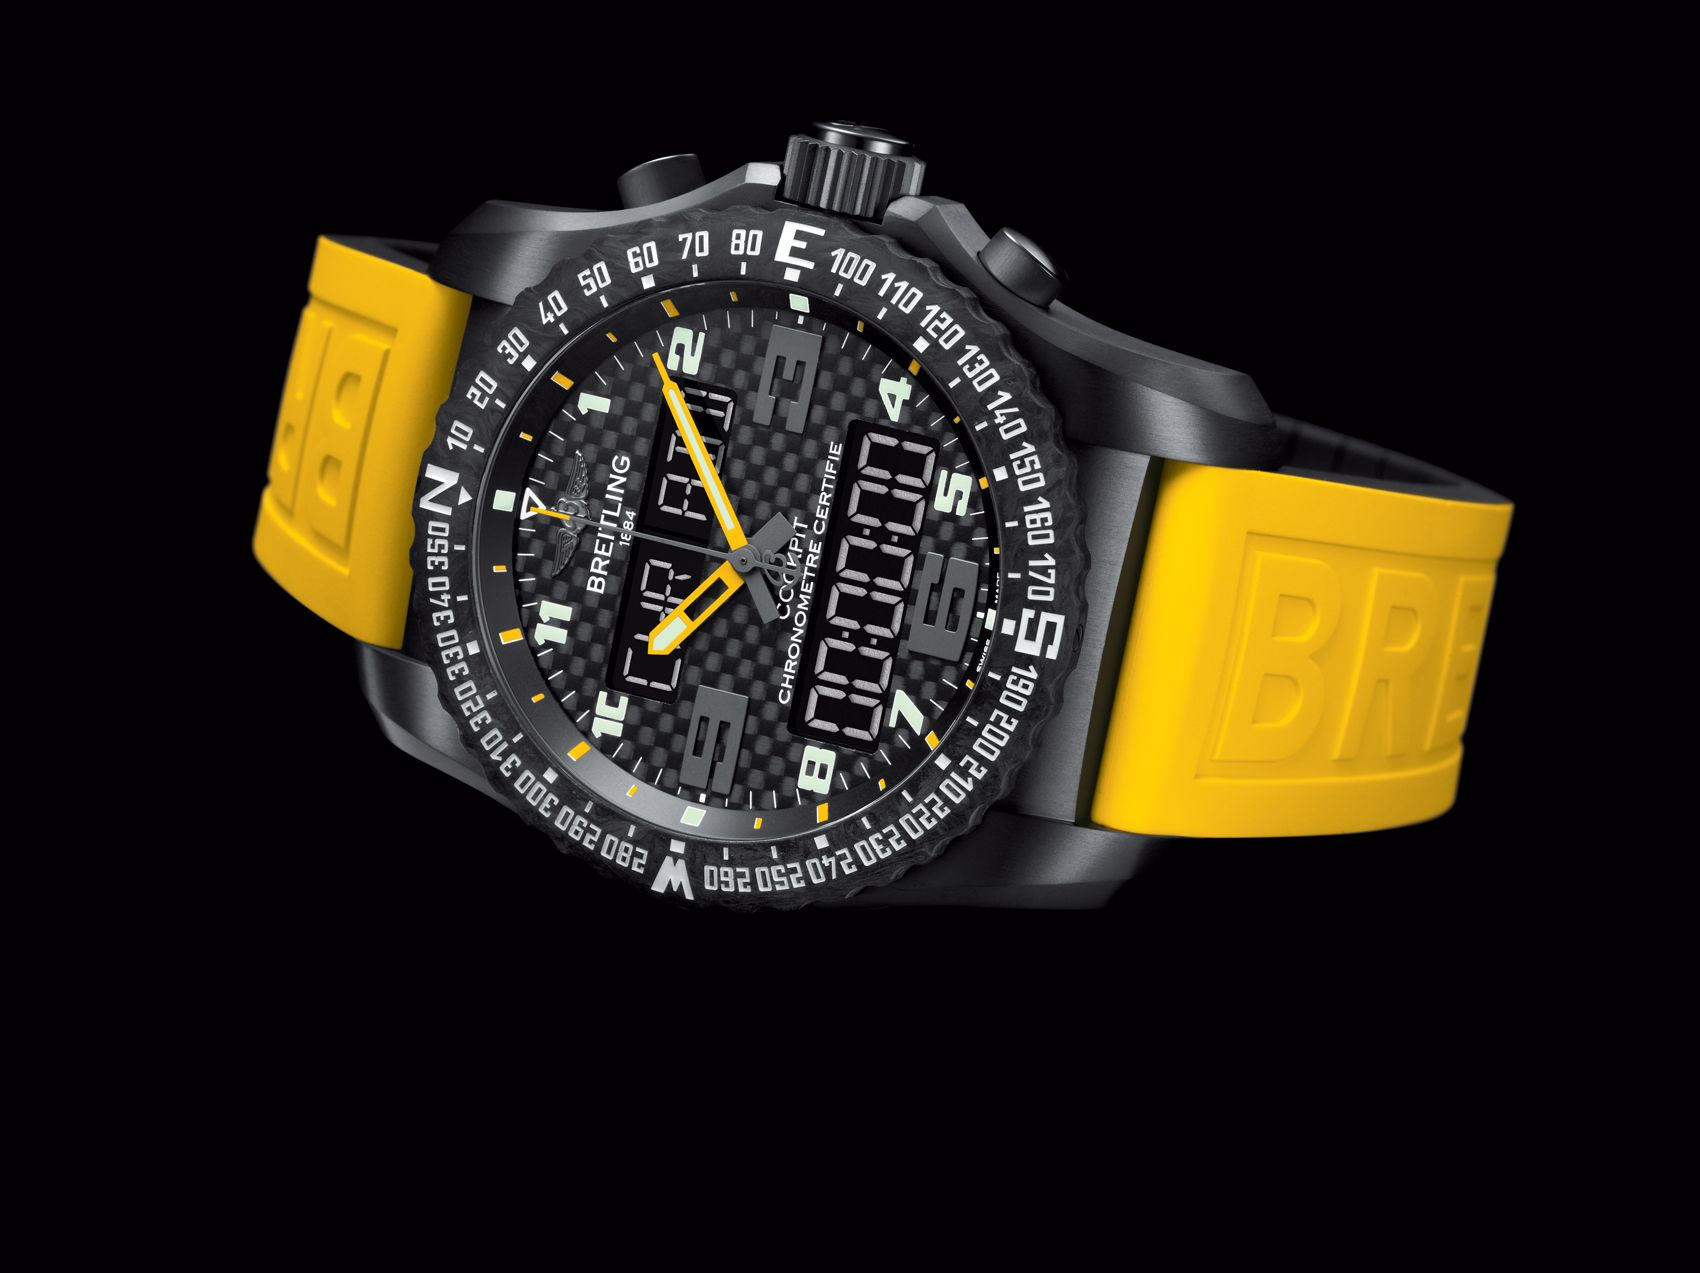 Cockpit B50 Night Mission Boutique Edition Breitling Instruments